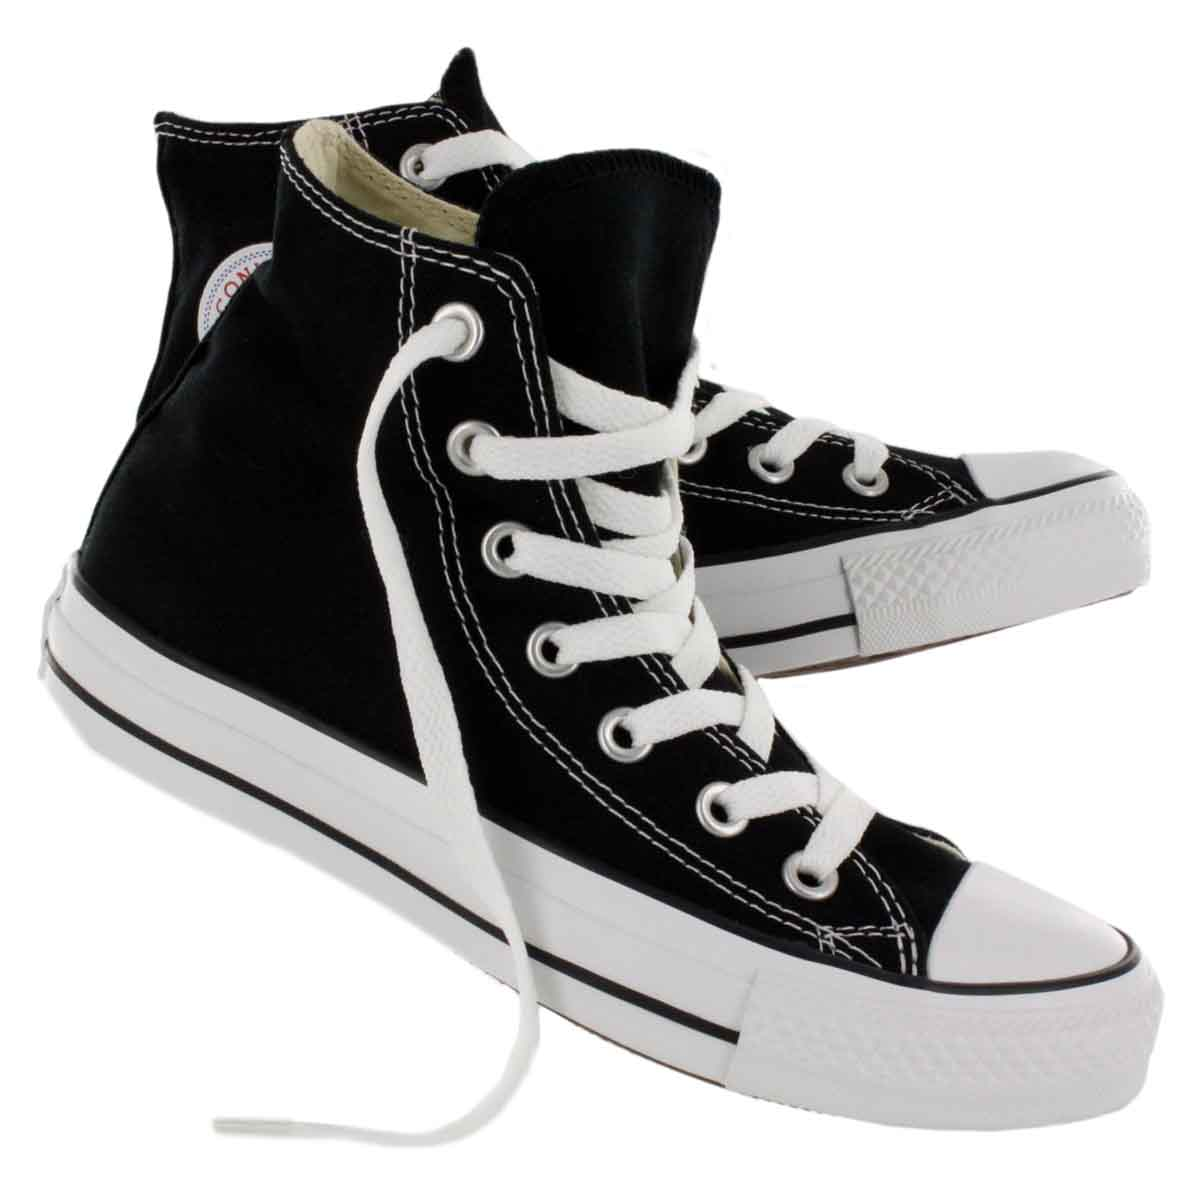 converse shoes for girls high cut